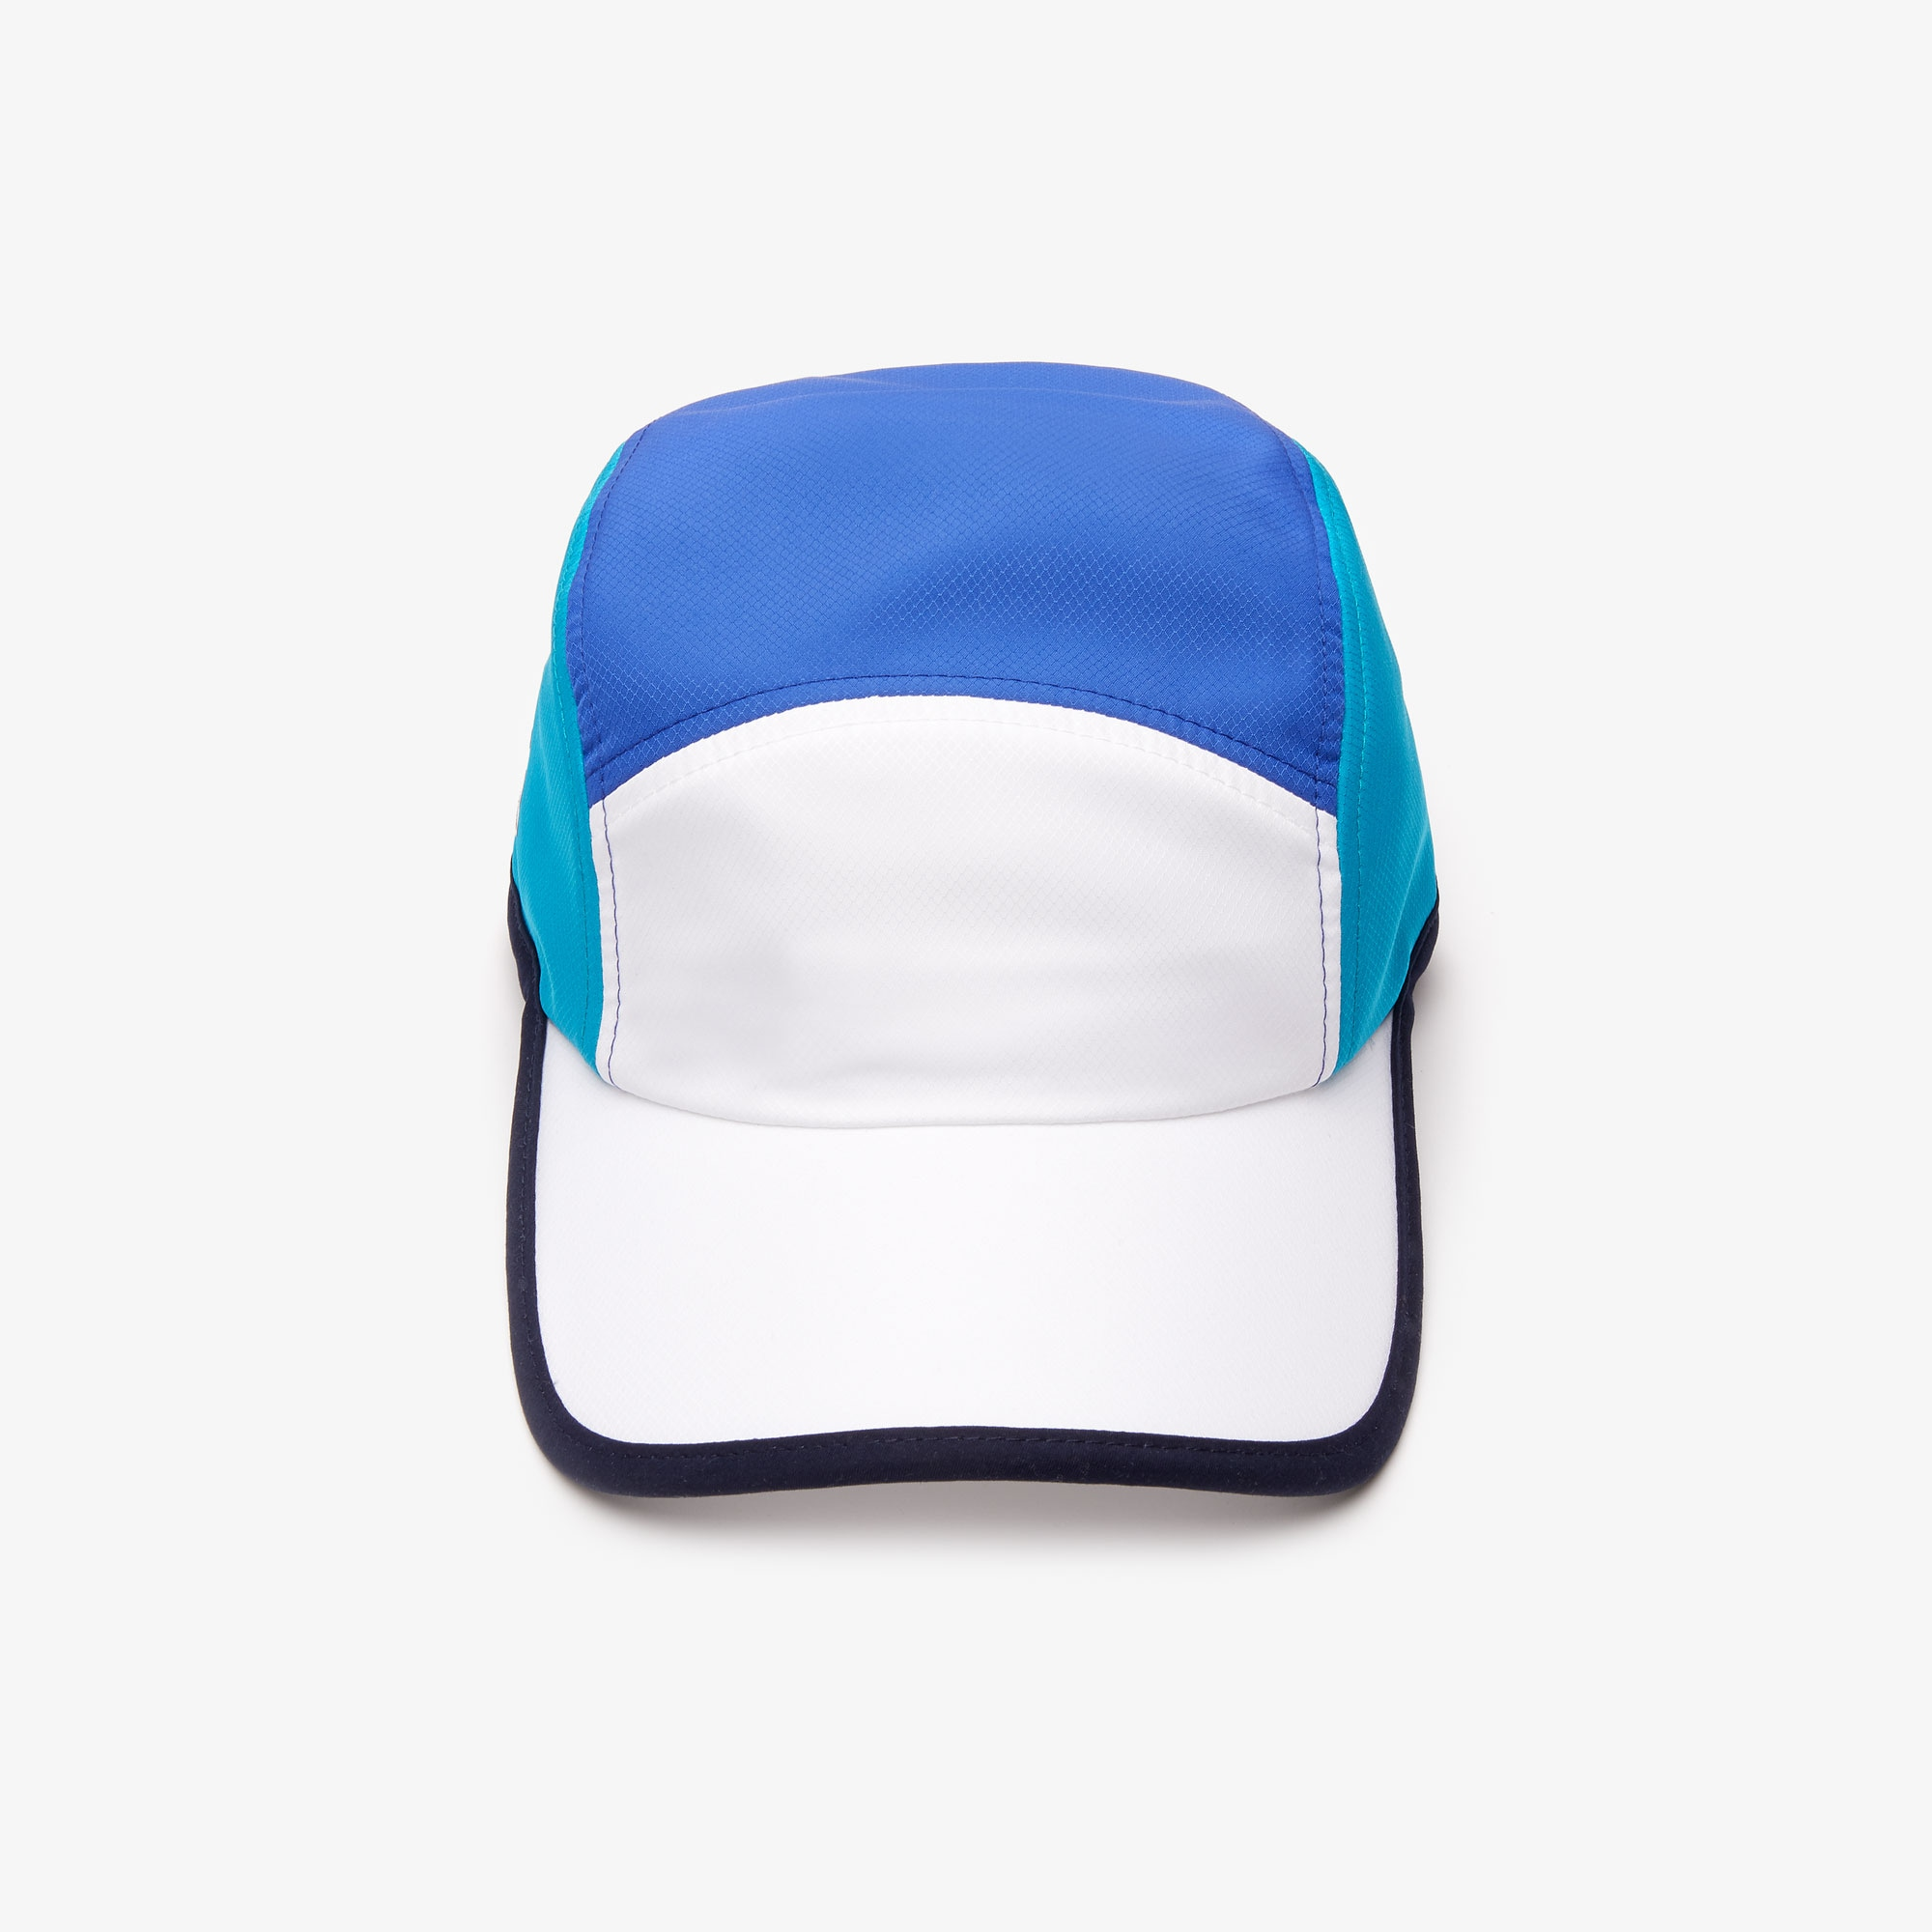 Men's SPORT Lightweight Color-Block Tennis Cap